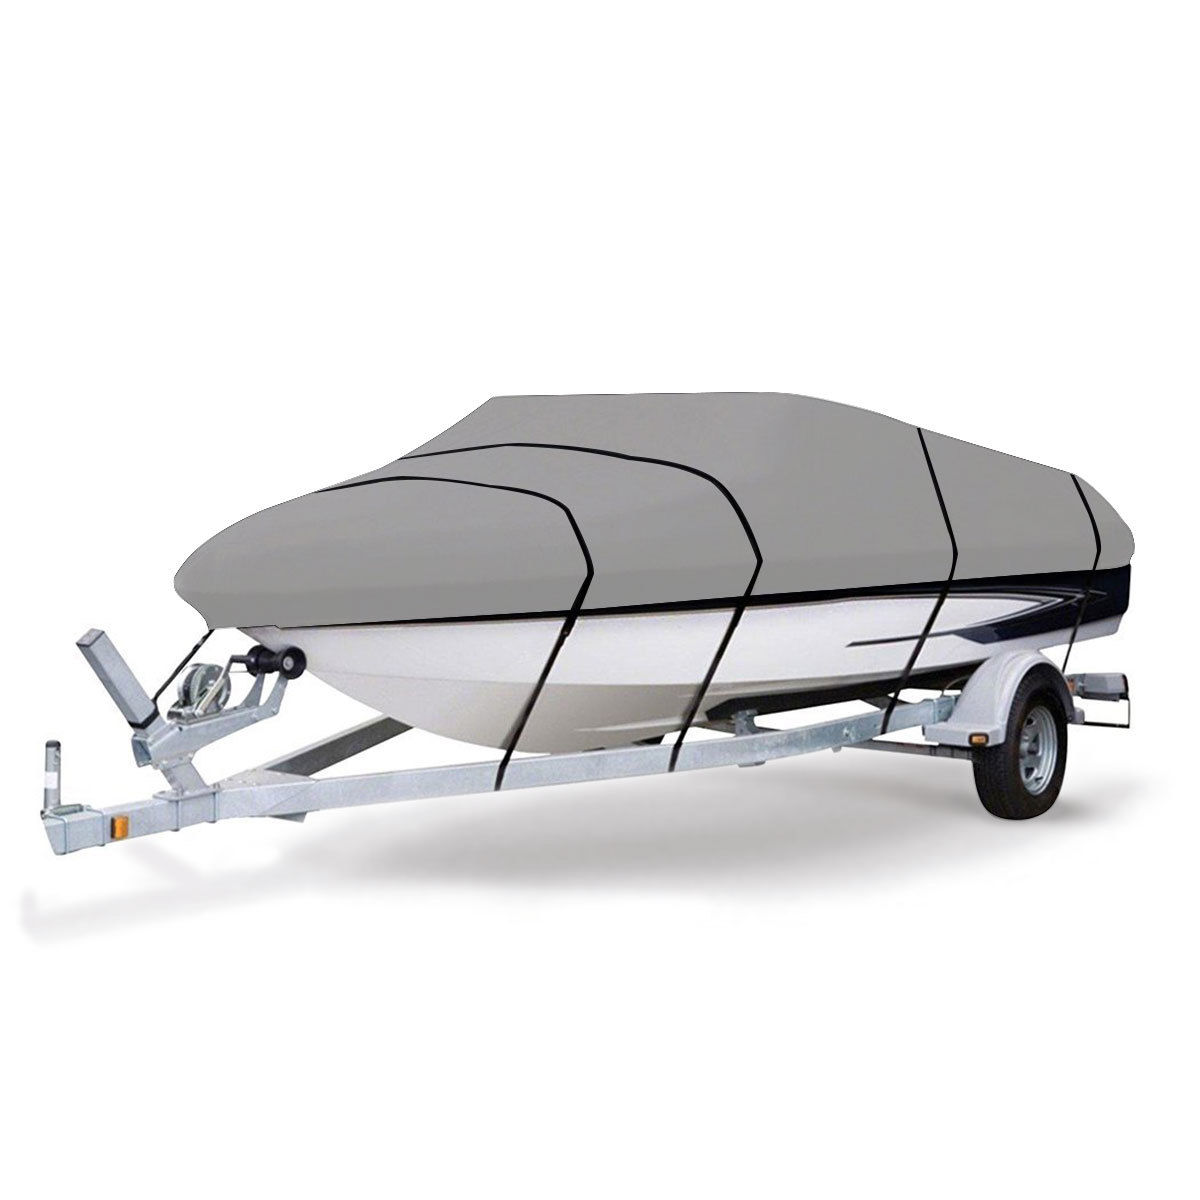 Gymax Heavy Duty 600D Marine Grade Polyester Canvas Trailerable Waterproof Boat Cover